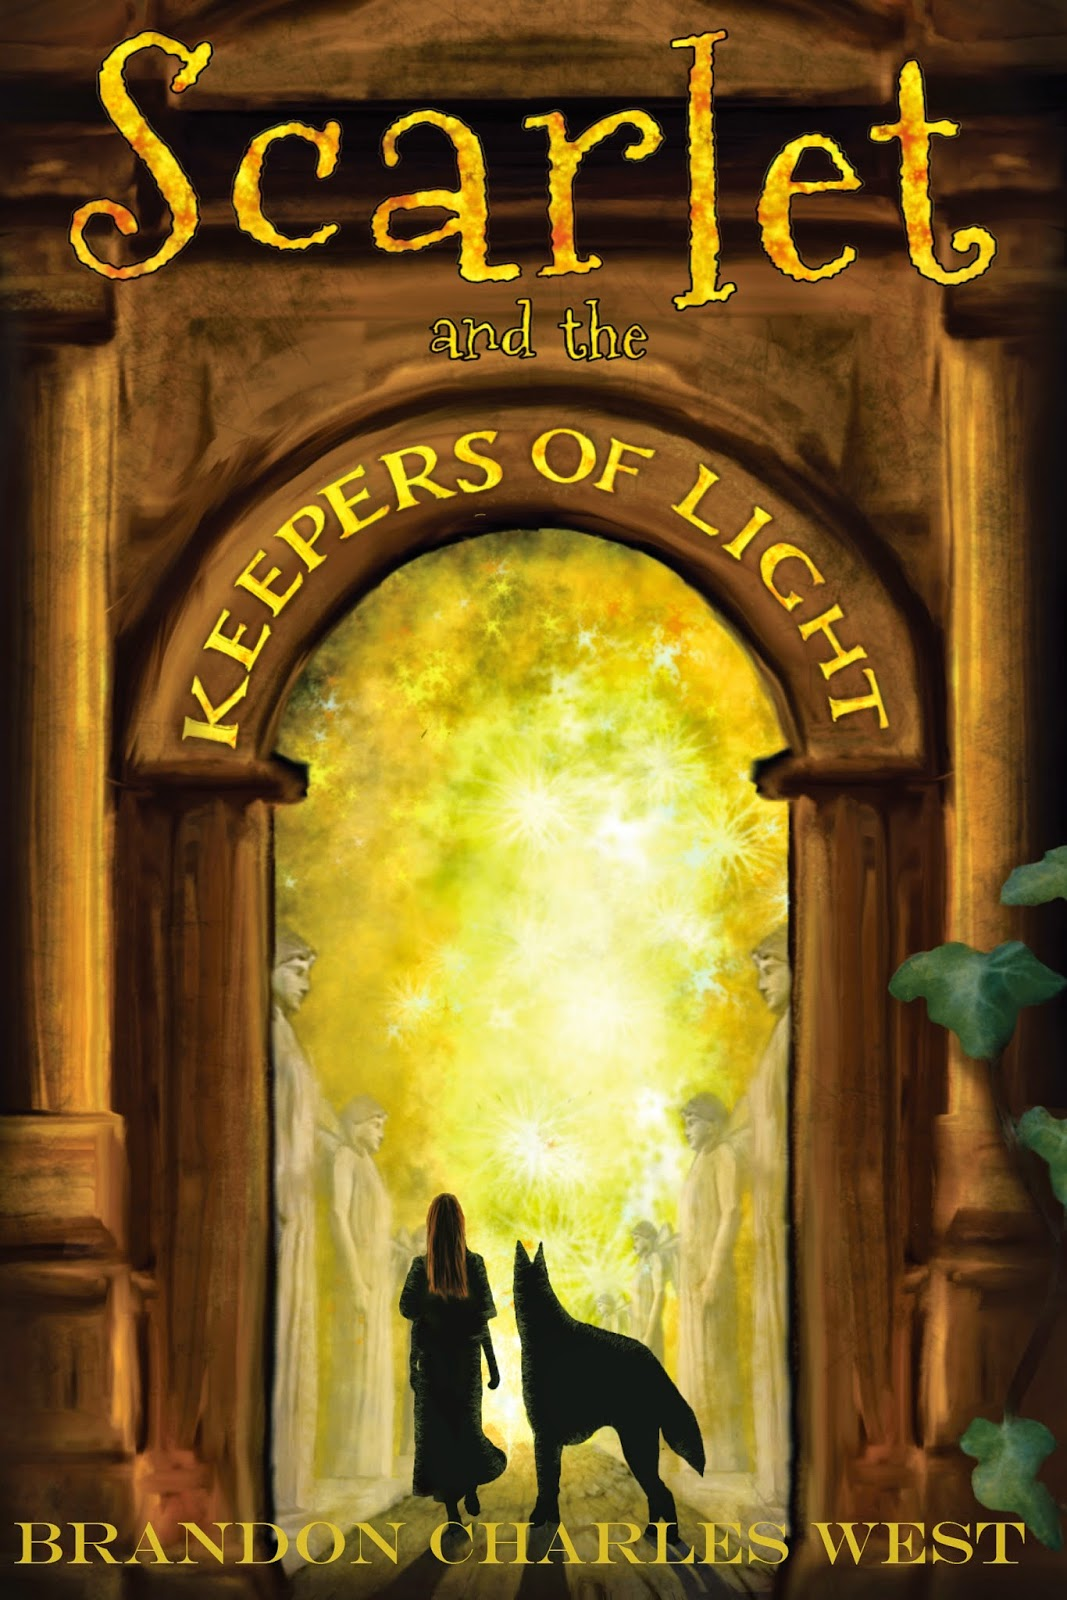 http://www.amazon.com/Scarlet-Keepers-Light-Hopewel-ebook/dp/B005YSUMA6/ref=sr_1_1?ie=UTF8&qid=1401824336&sr=8-1&keywords=brandon+charles+west